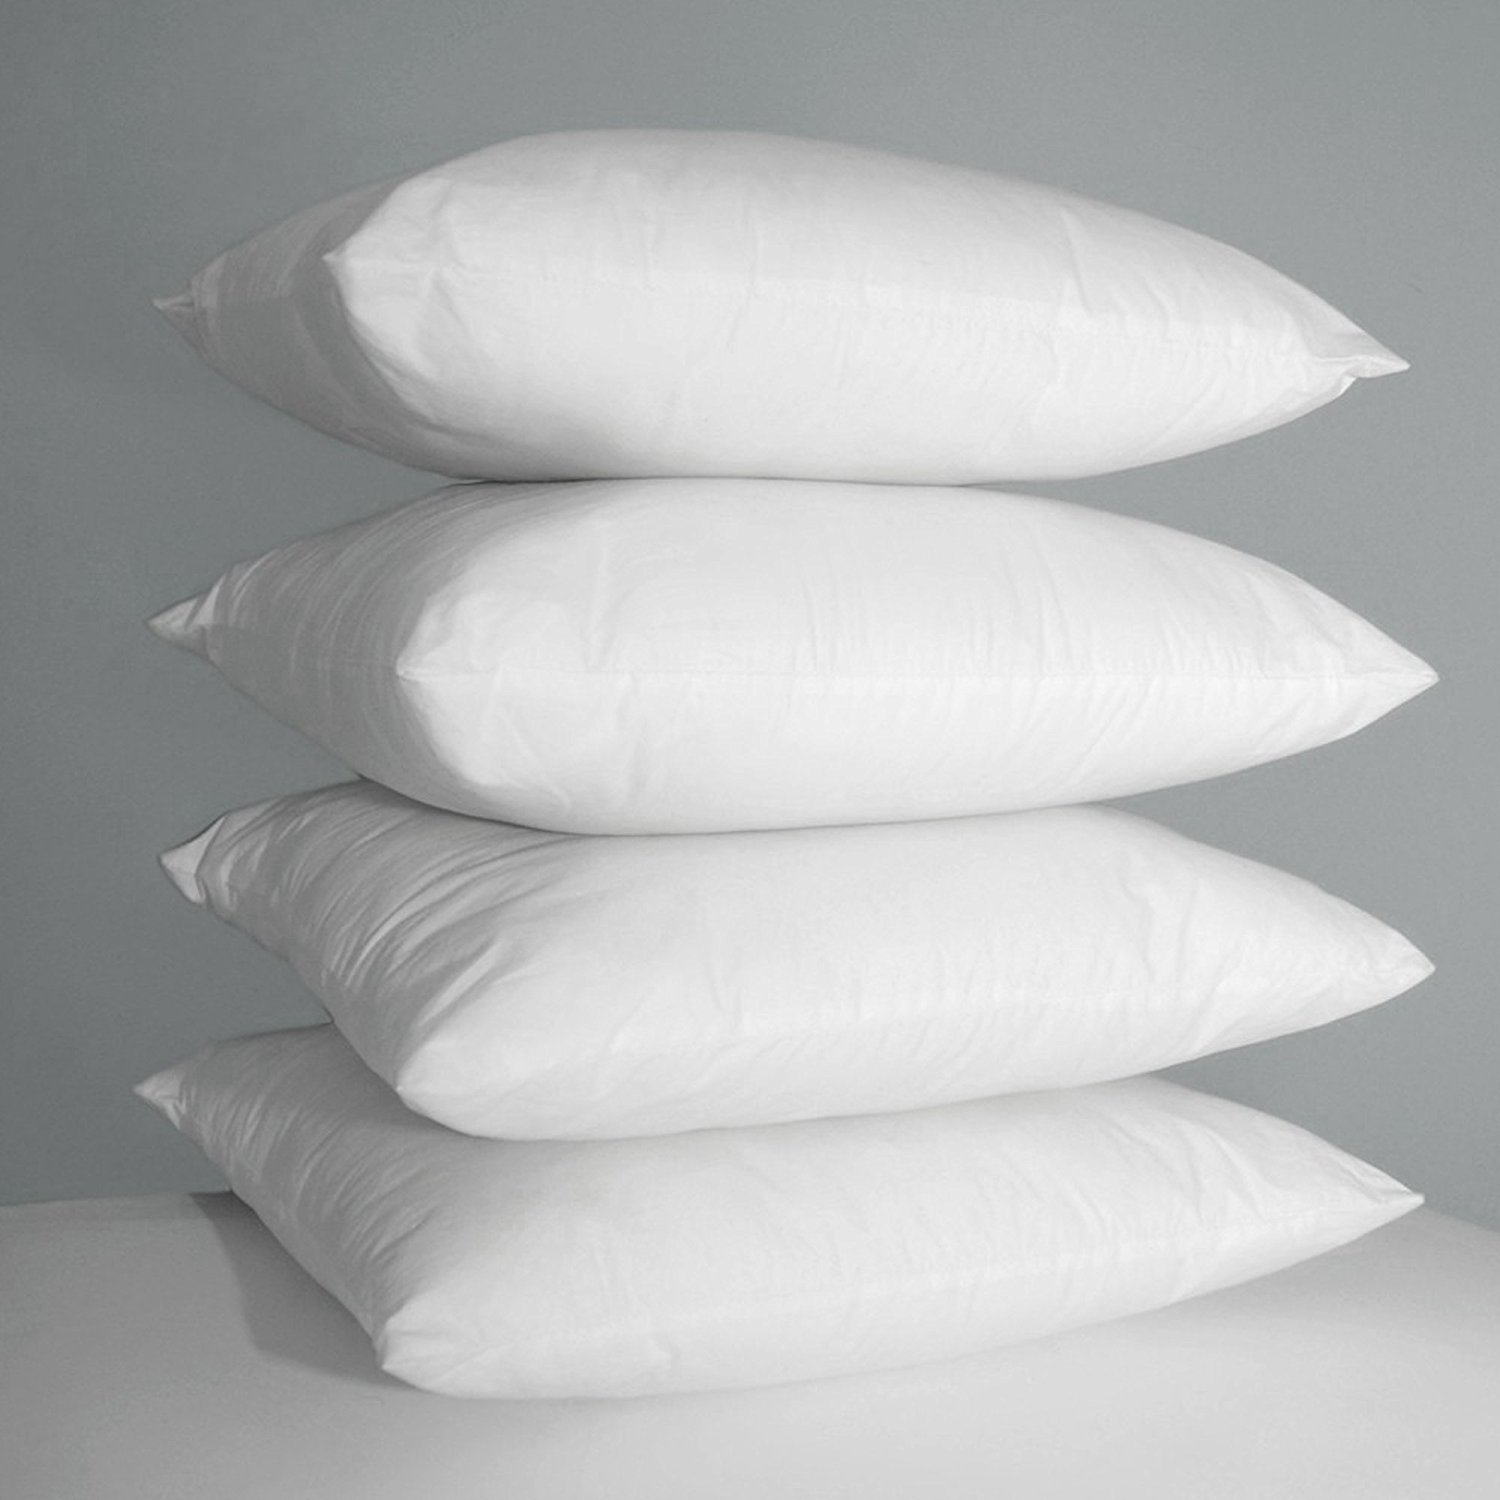 Hotel Linens pm 4 x LUXURY PILLOWS - SUPER BOUNCE BACK PILLOWS HOLLOW FIBRE FILLED PILLOW